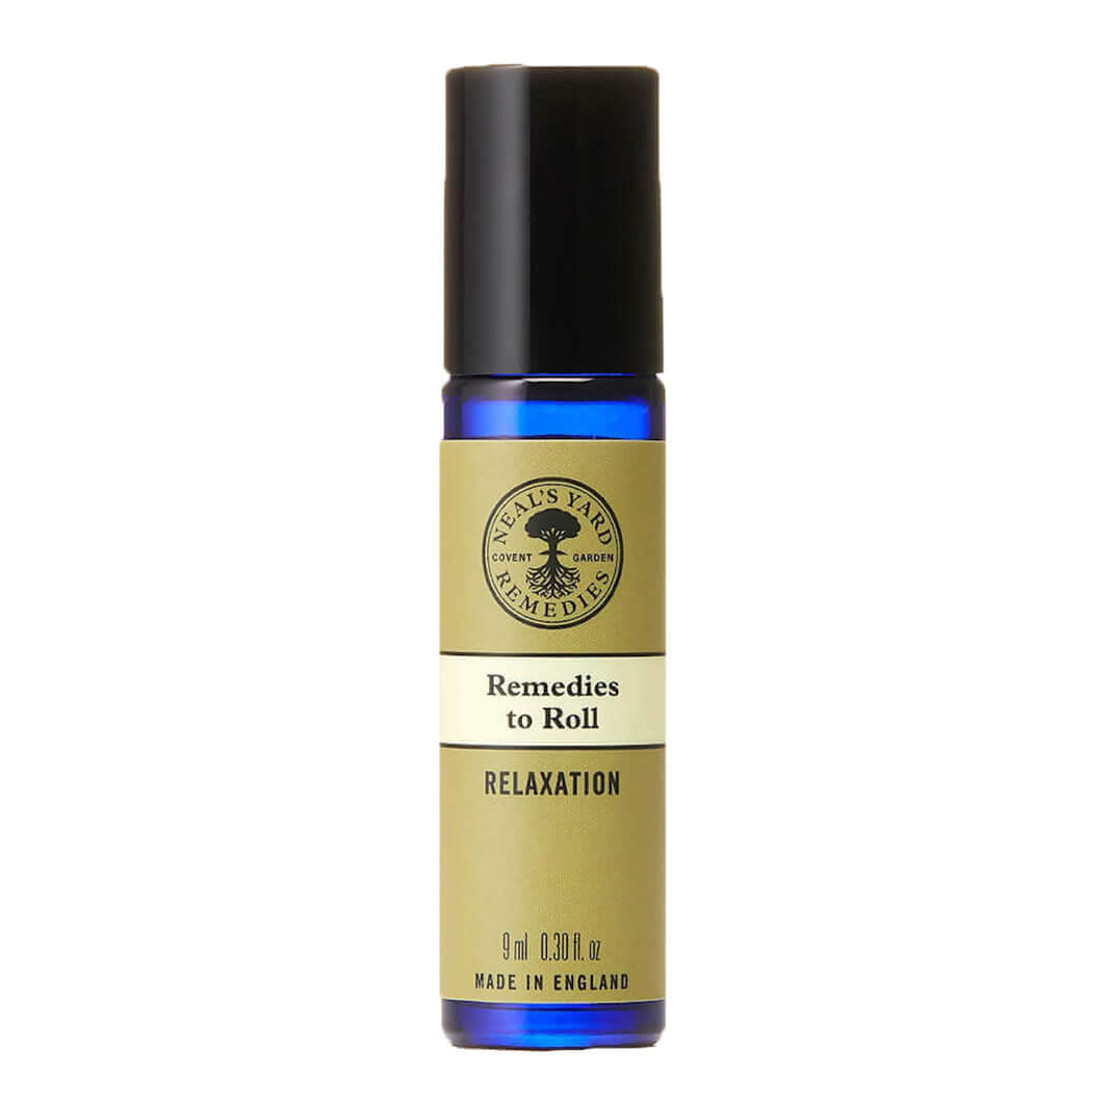 Neal's Yard Remedies Relaxation Remedies To Roll 9ml